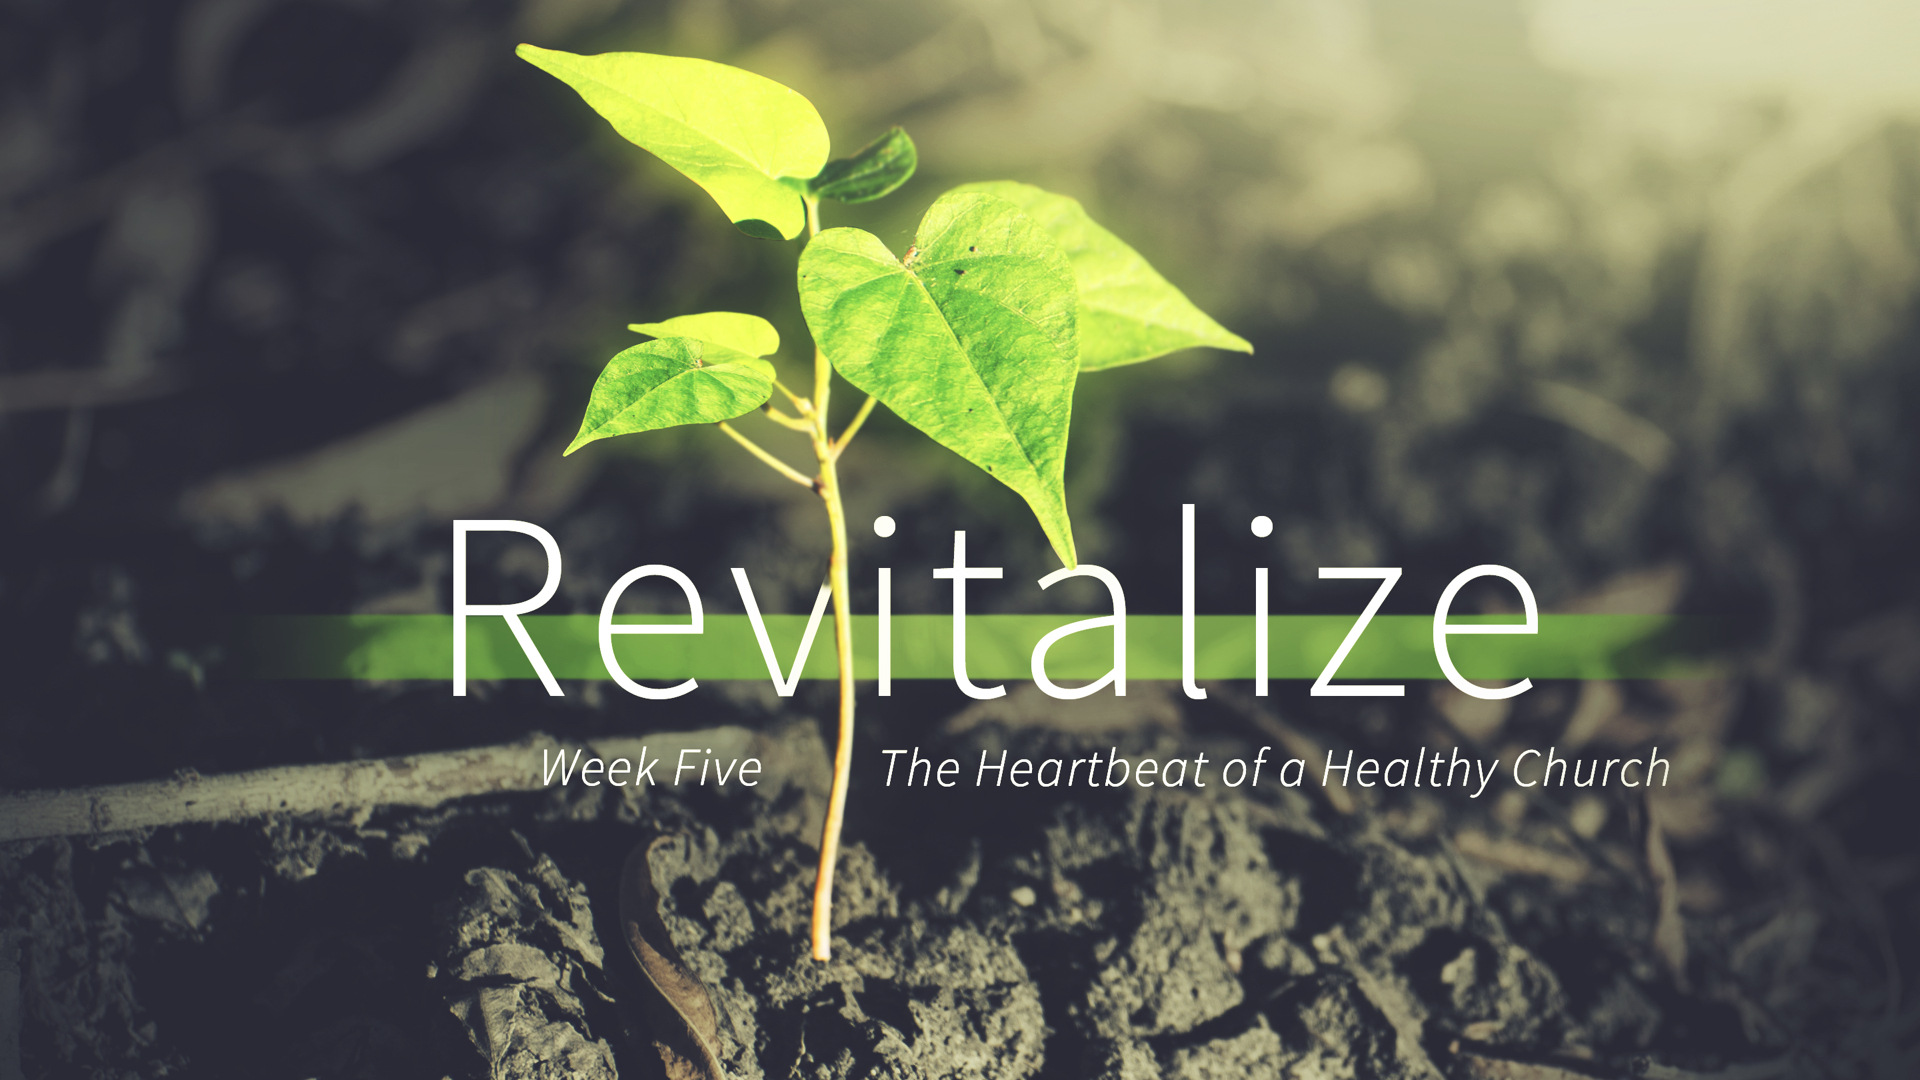 Revitalize - Week 5 - The Heartbeat of a Healthy Church copy.005.jpeg